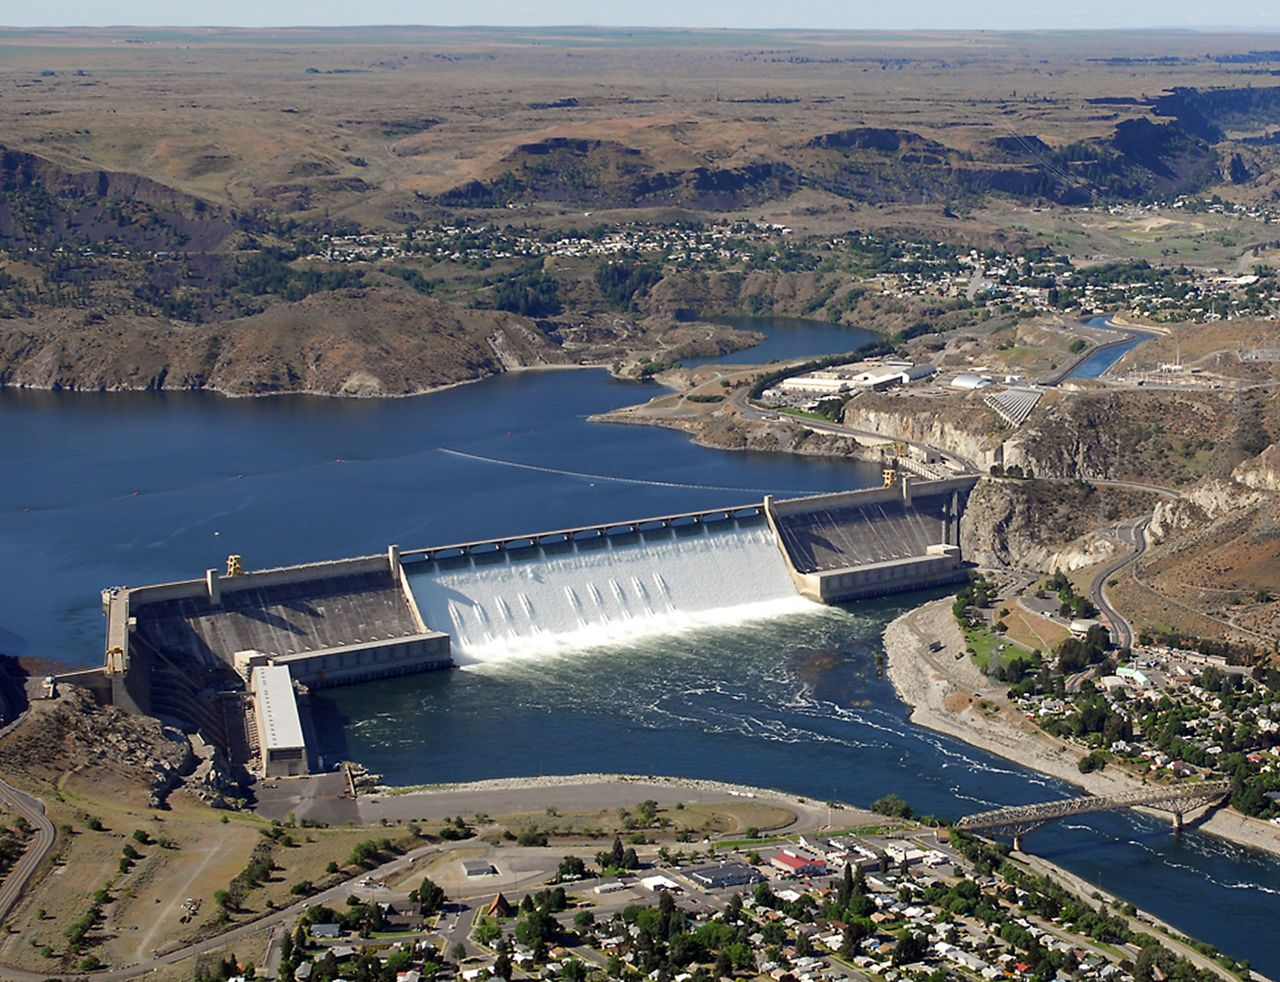 grand coulee dating Date, average low, average high, record low, record high, average  precipitation, average snow january, 21°, 33°, -17° (1950), 61° (1981), 1, na.